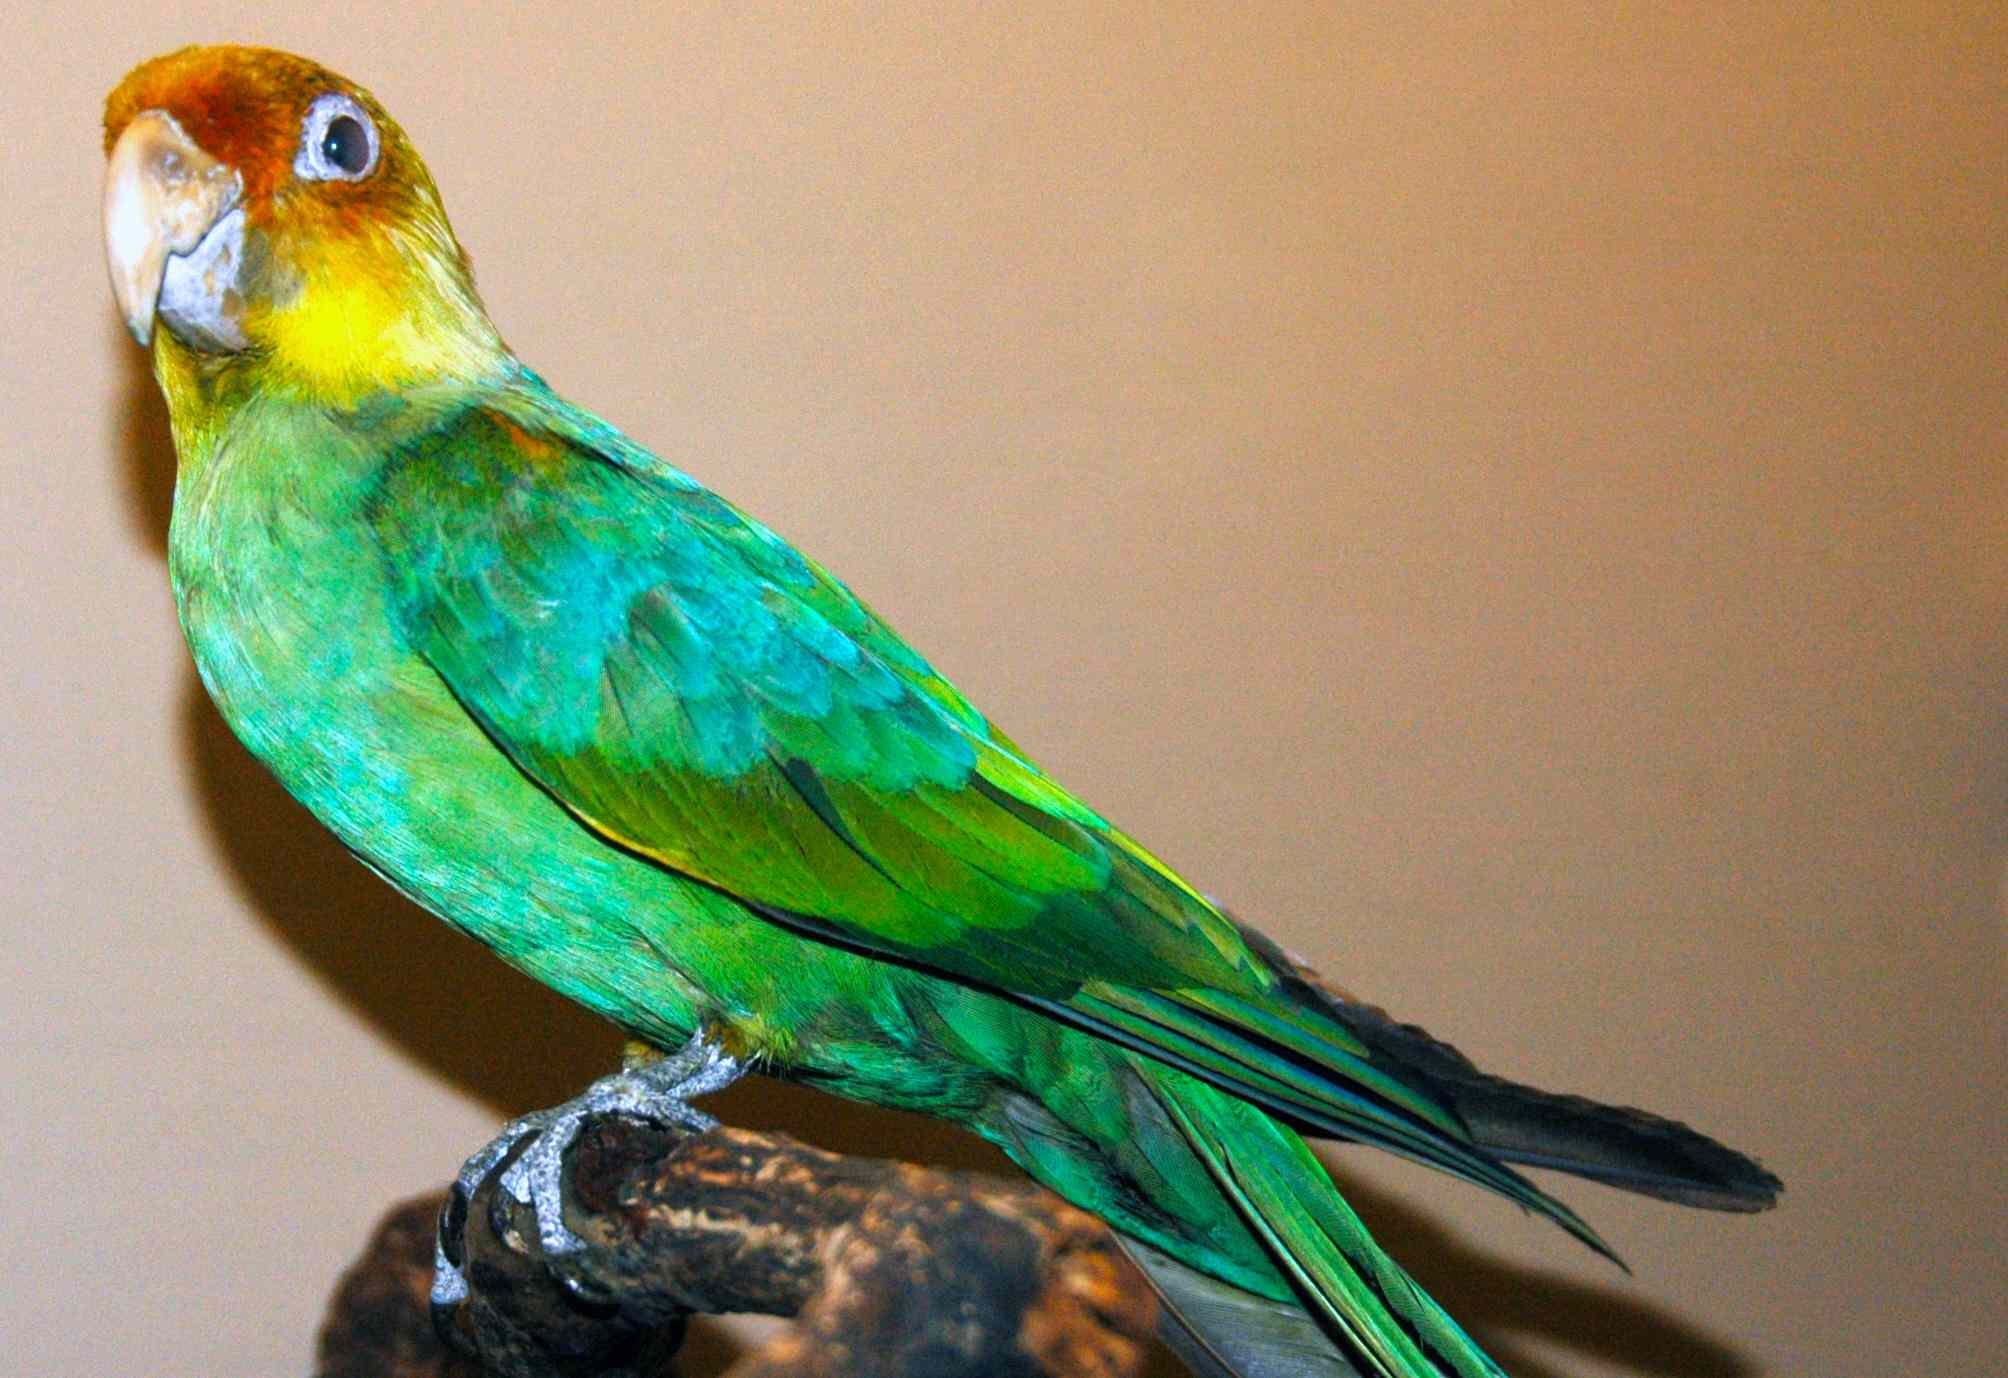 a taxidermy mount of a bright green parrot type bird with an orange brown head and yellow markings on neck